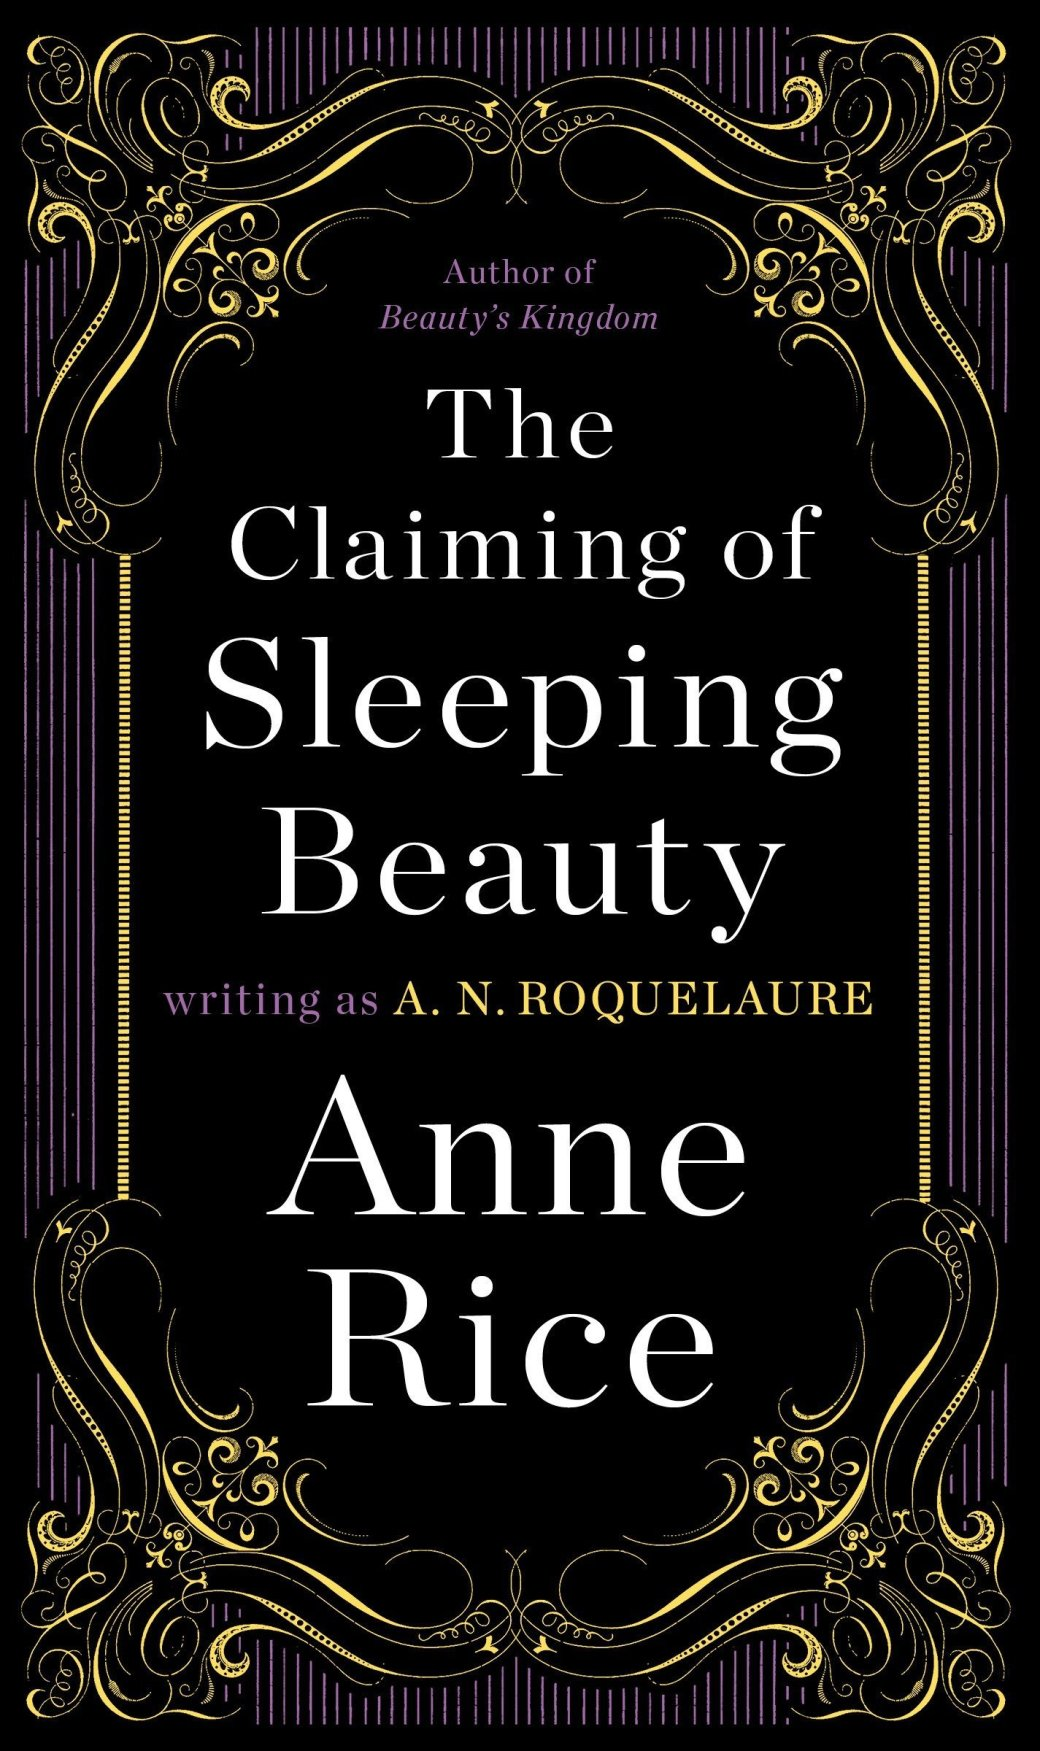 Image result for The Claiming of Sleeping Beauty